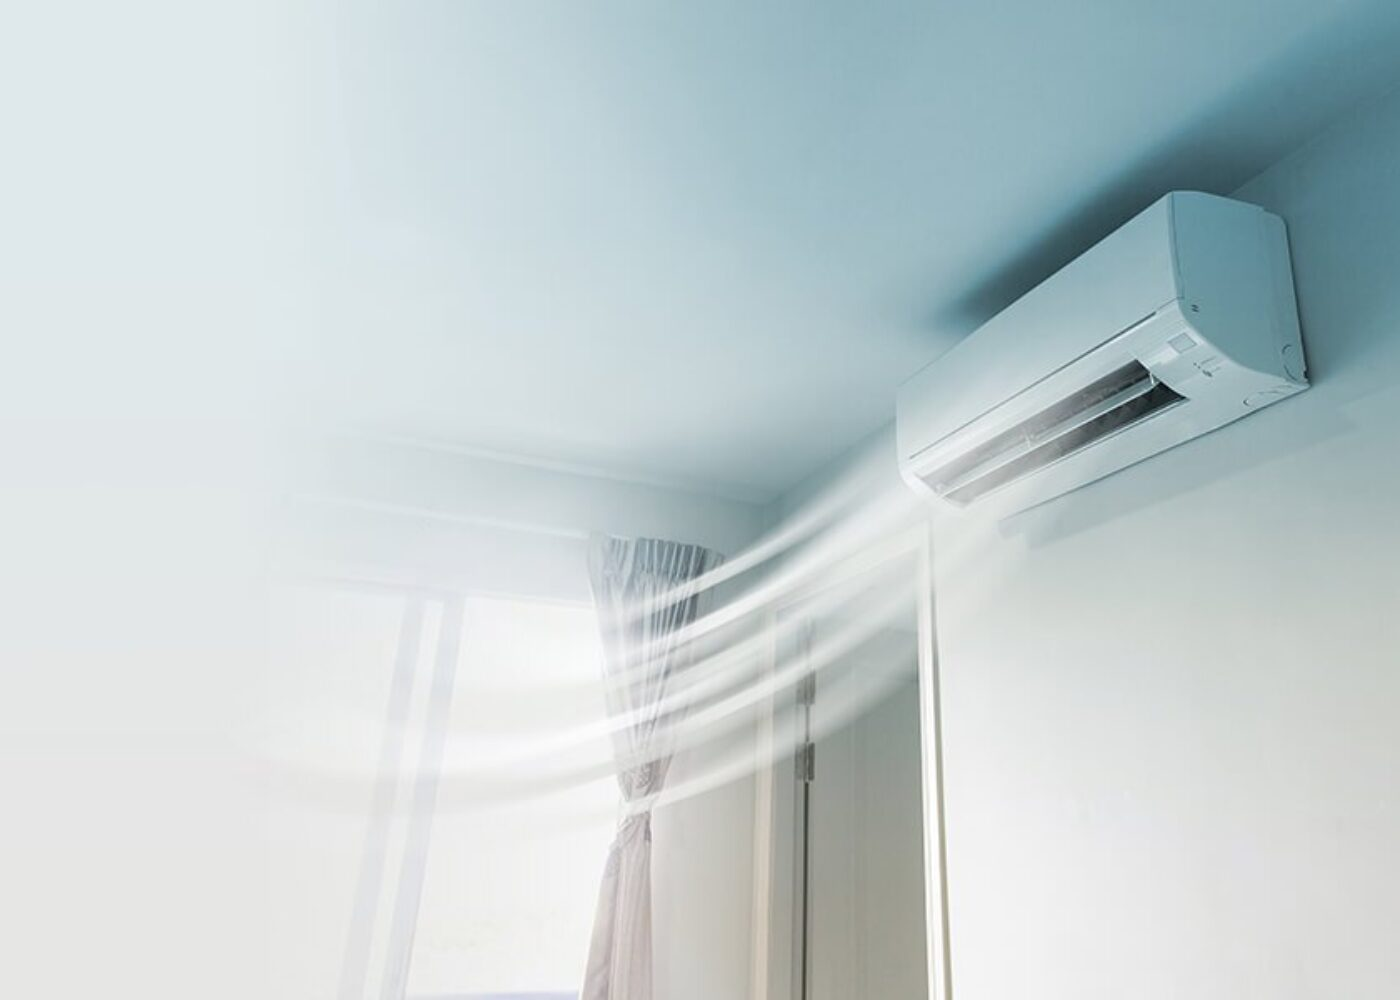 7 Ways To Get The Most Out Of Your Air Conditioner